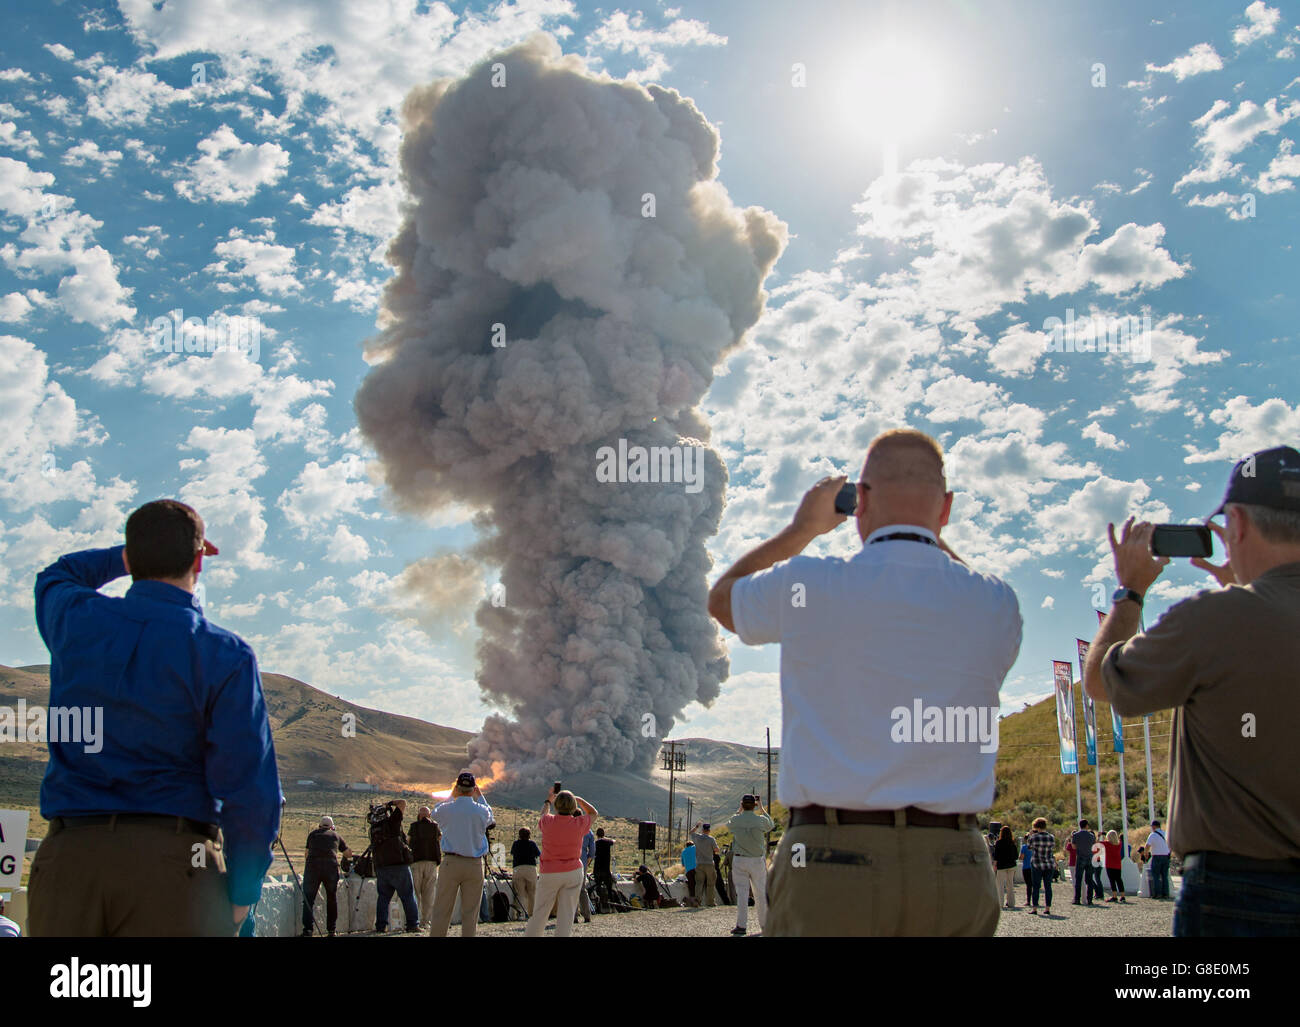 Promontory, Utah, USA. 28th June, 2016. Guests watch smoke and flames rise during the second and final qualification - Stock Image